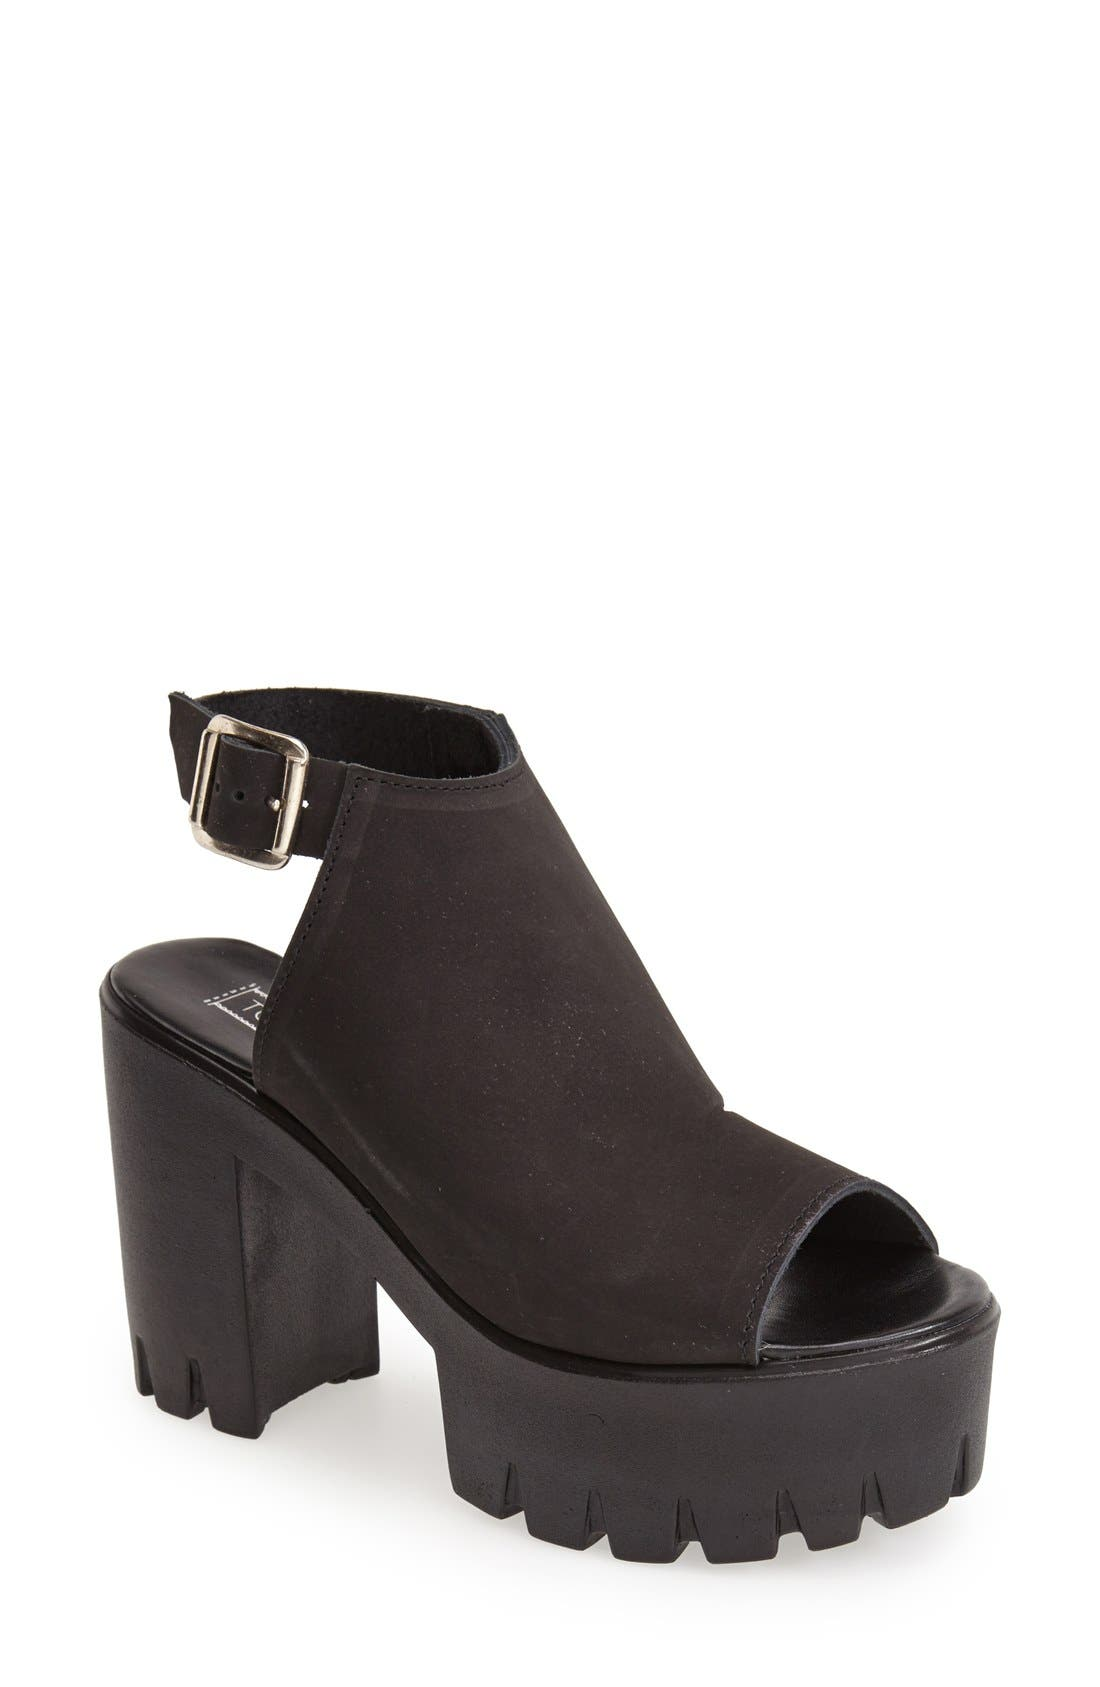 Alternate Image 1 Selected - Topshop 'Lily' Platform Sandal (Women)